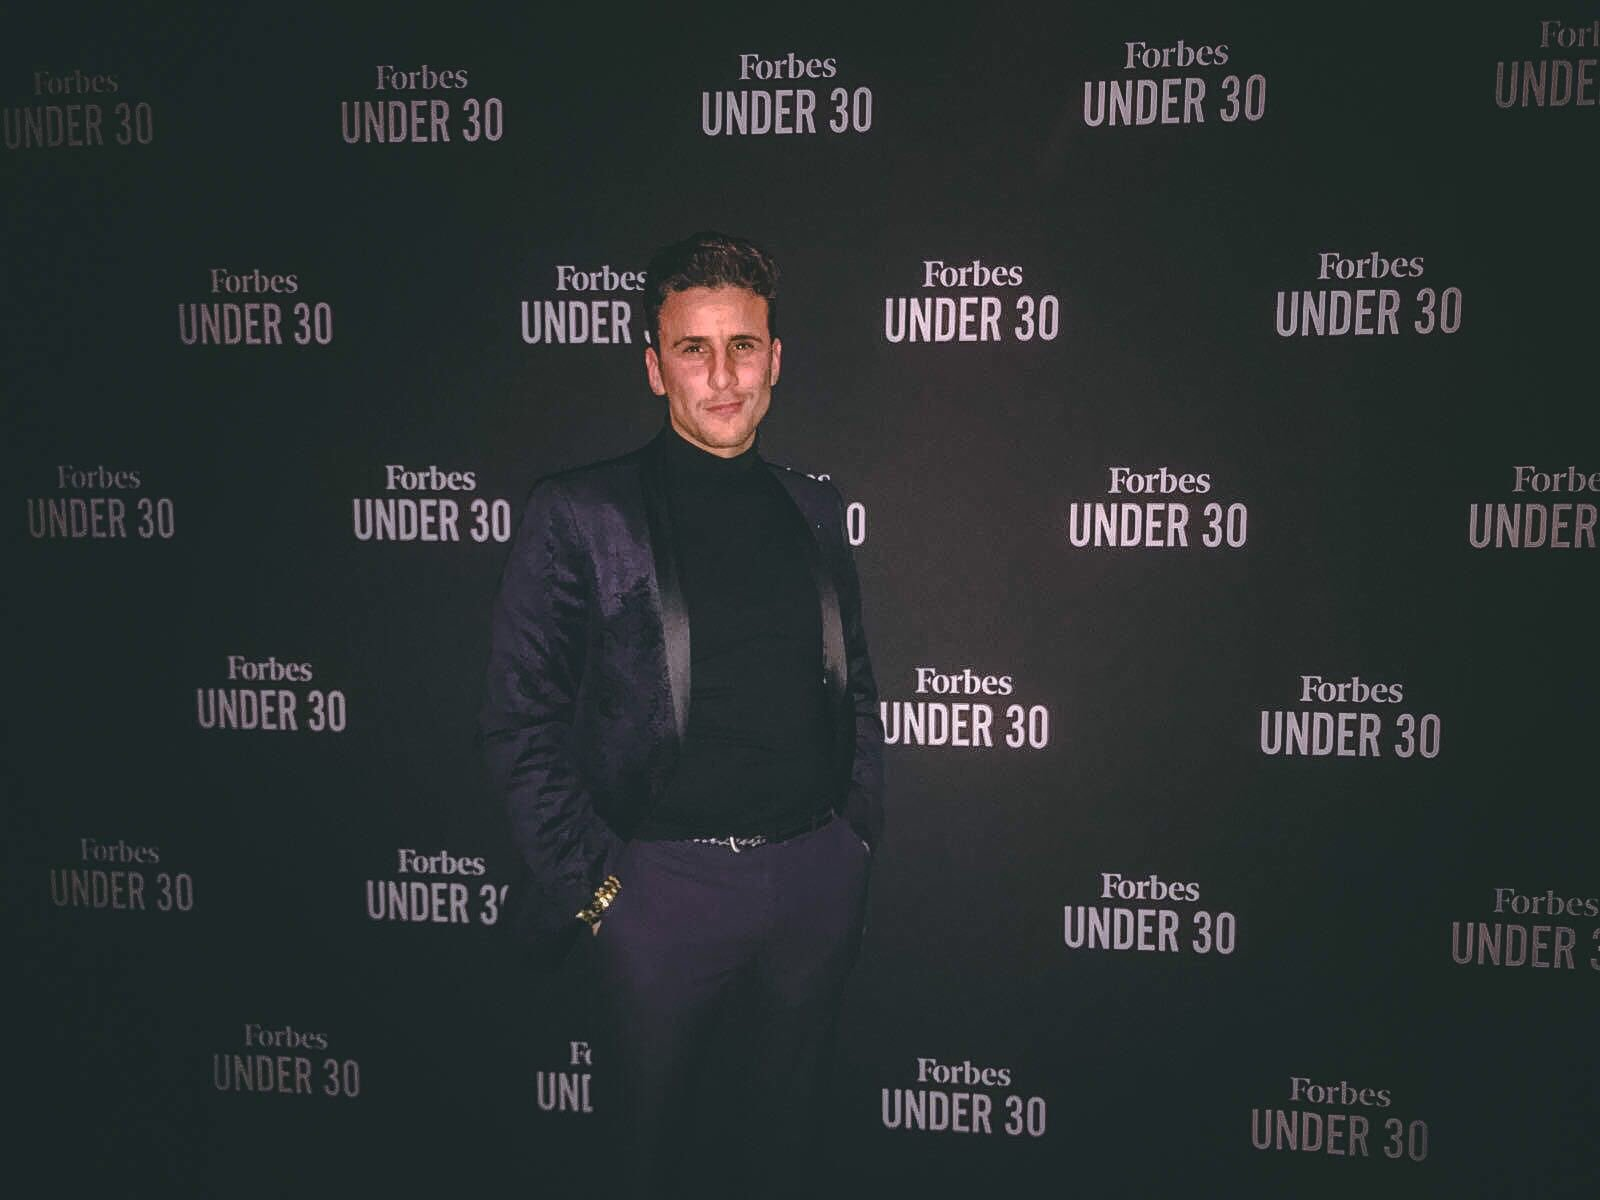 Forbes 30 under 30 launchparty